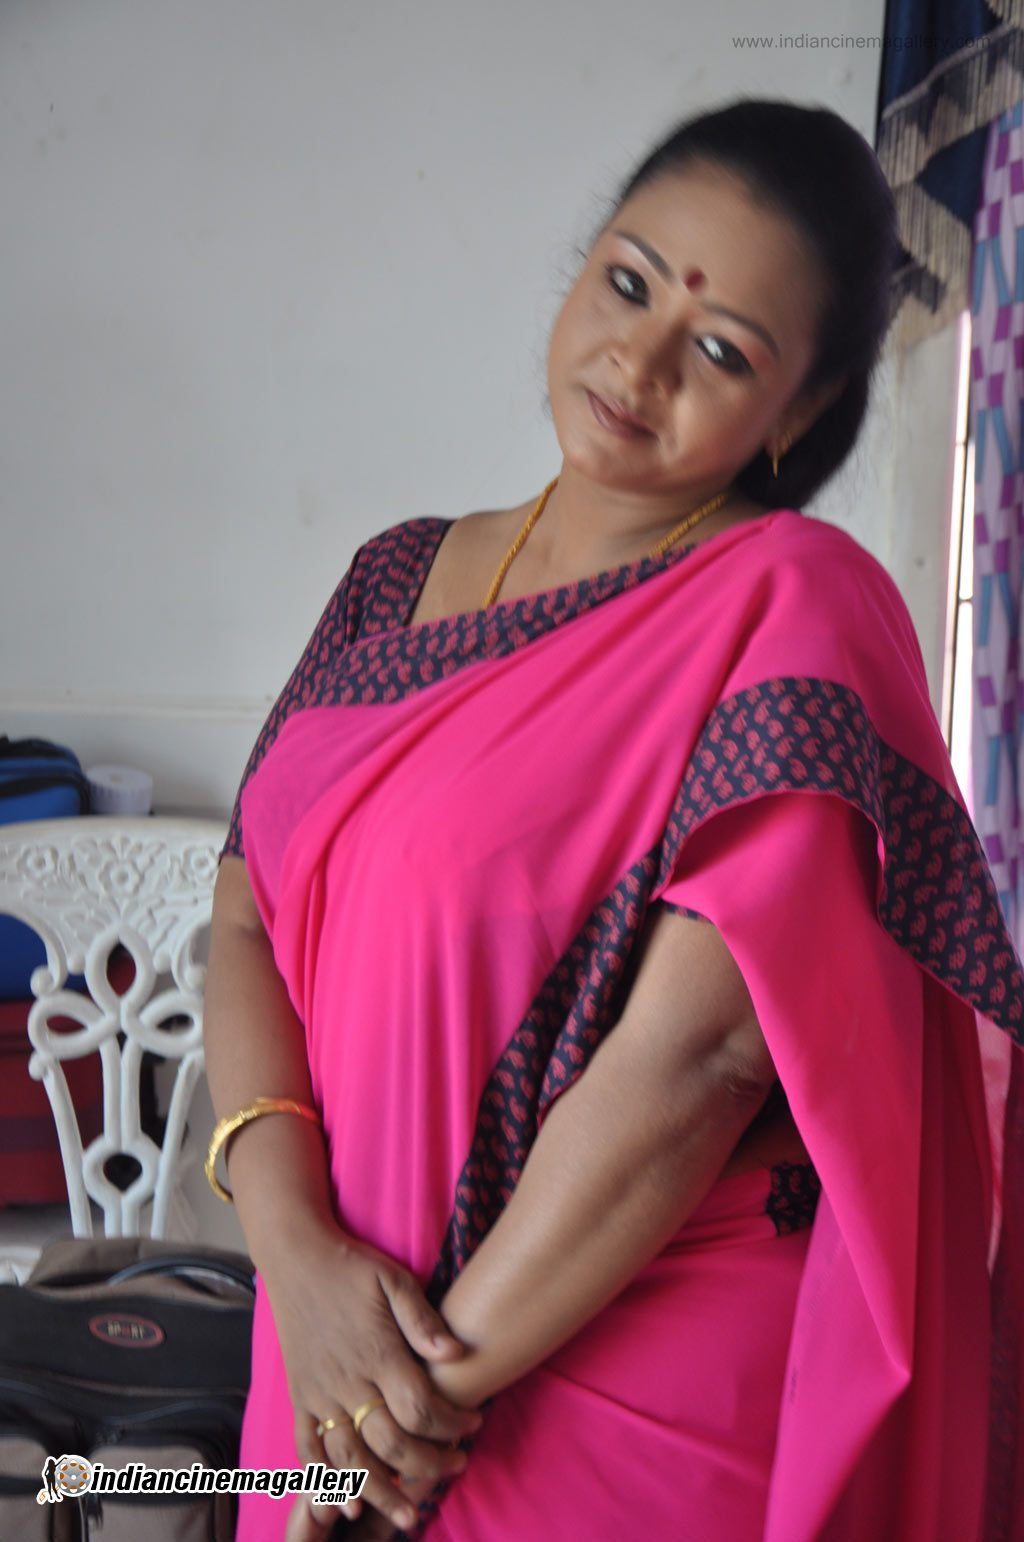 Woman. love mallu aunty hot images